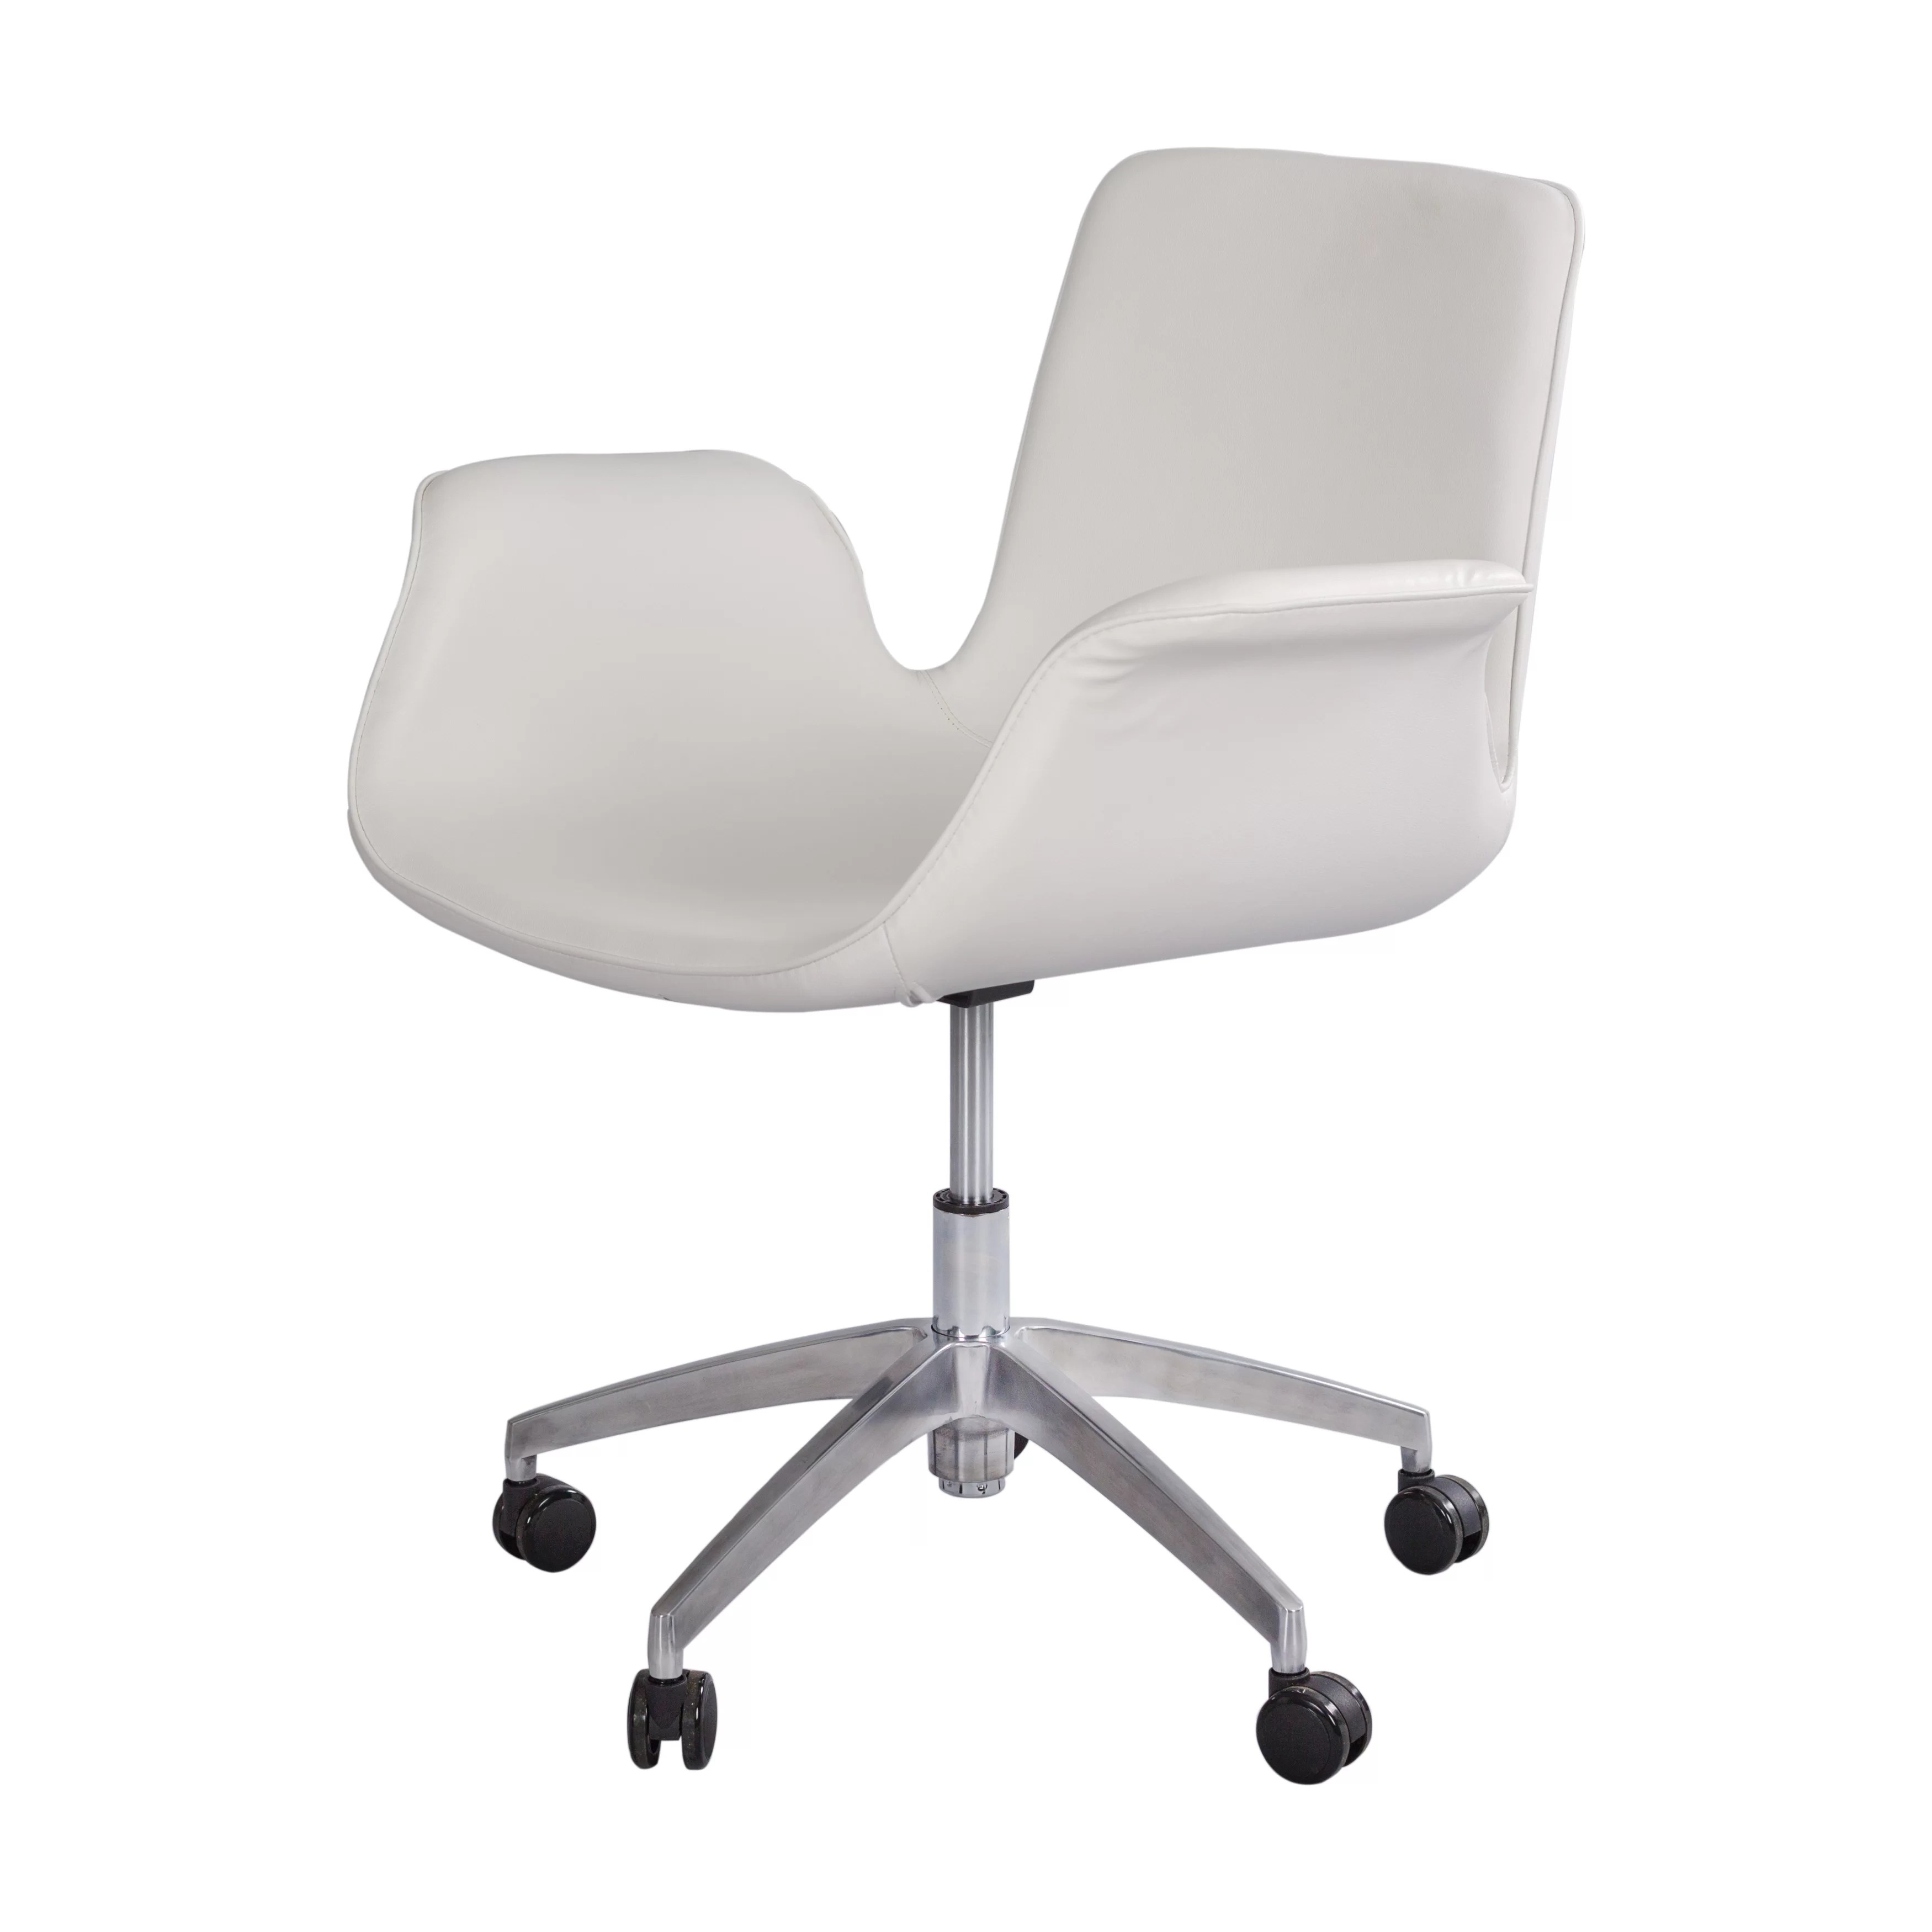 wayfair swivel chair wheel in lahore matrix jobb mid back office and reviews